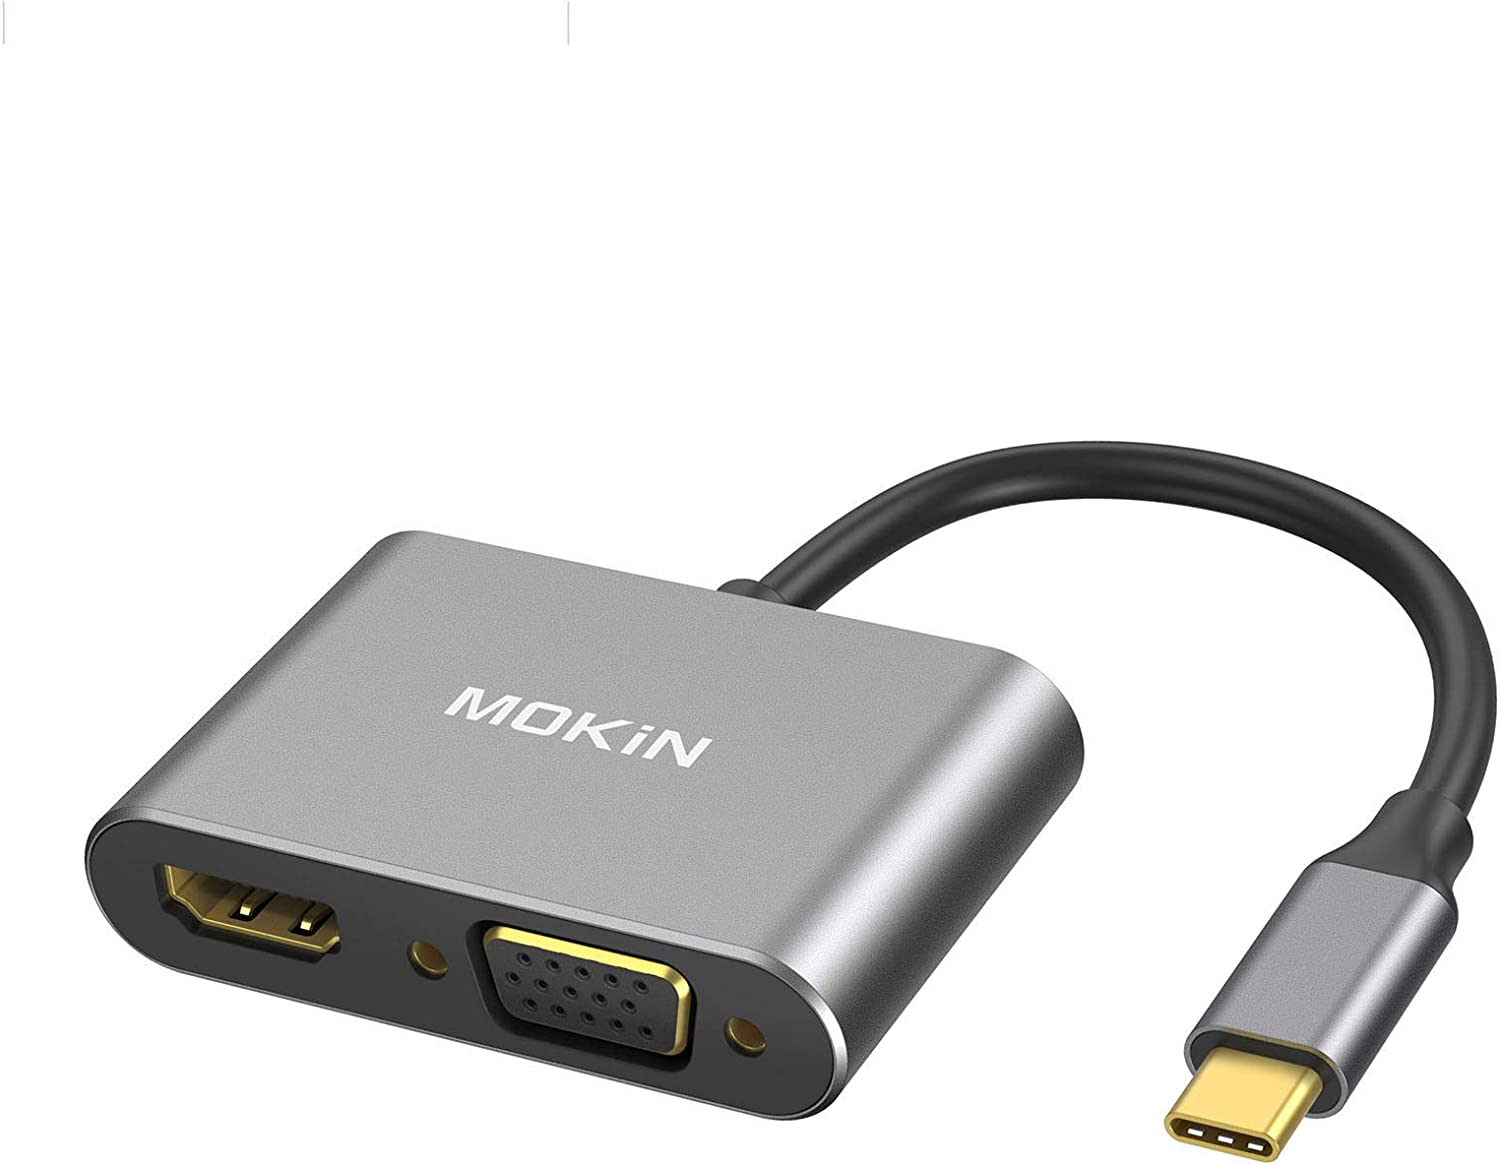 USB C to HDMI VGA Adapter, MOKiN 2-in-1 Type C to VGA HDMI Adapter, Thunderbolt 3 Compatible for MacBook Pro/Air/ipad Pro 2018/Dell XPS, Chromebook Pixel, Galaxy S8/S8Plus, Surface Go, and More